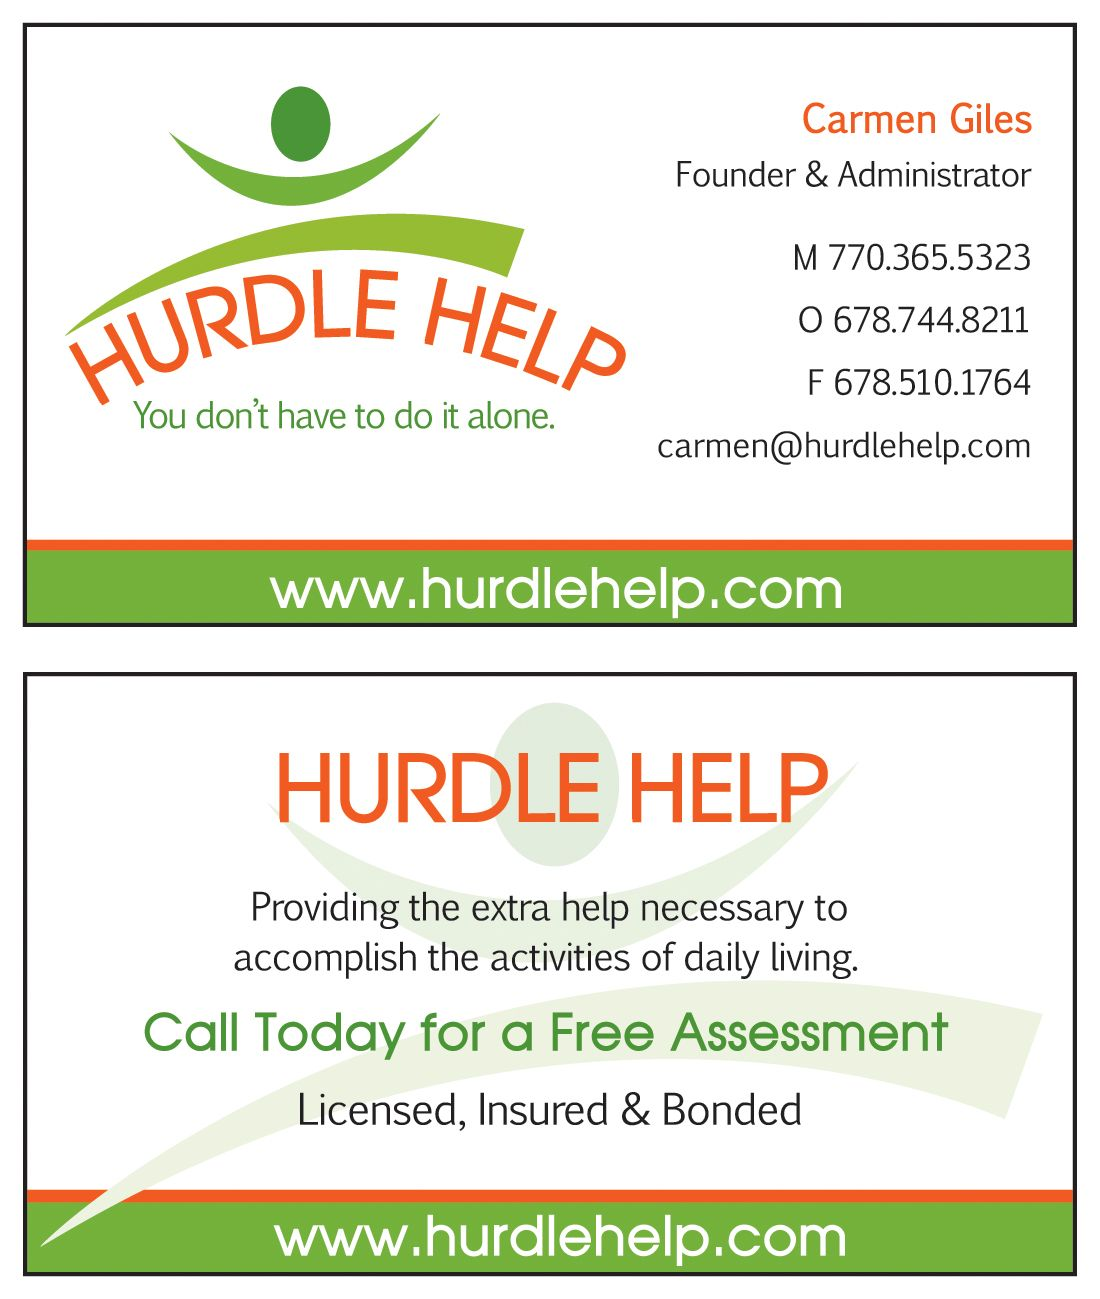 Business card design and layout created for Hurdle Help, a